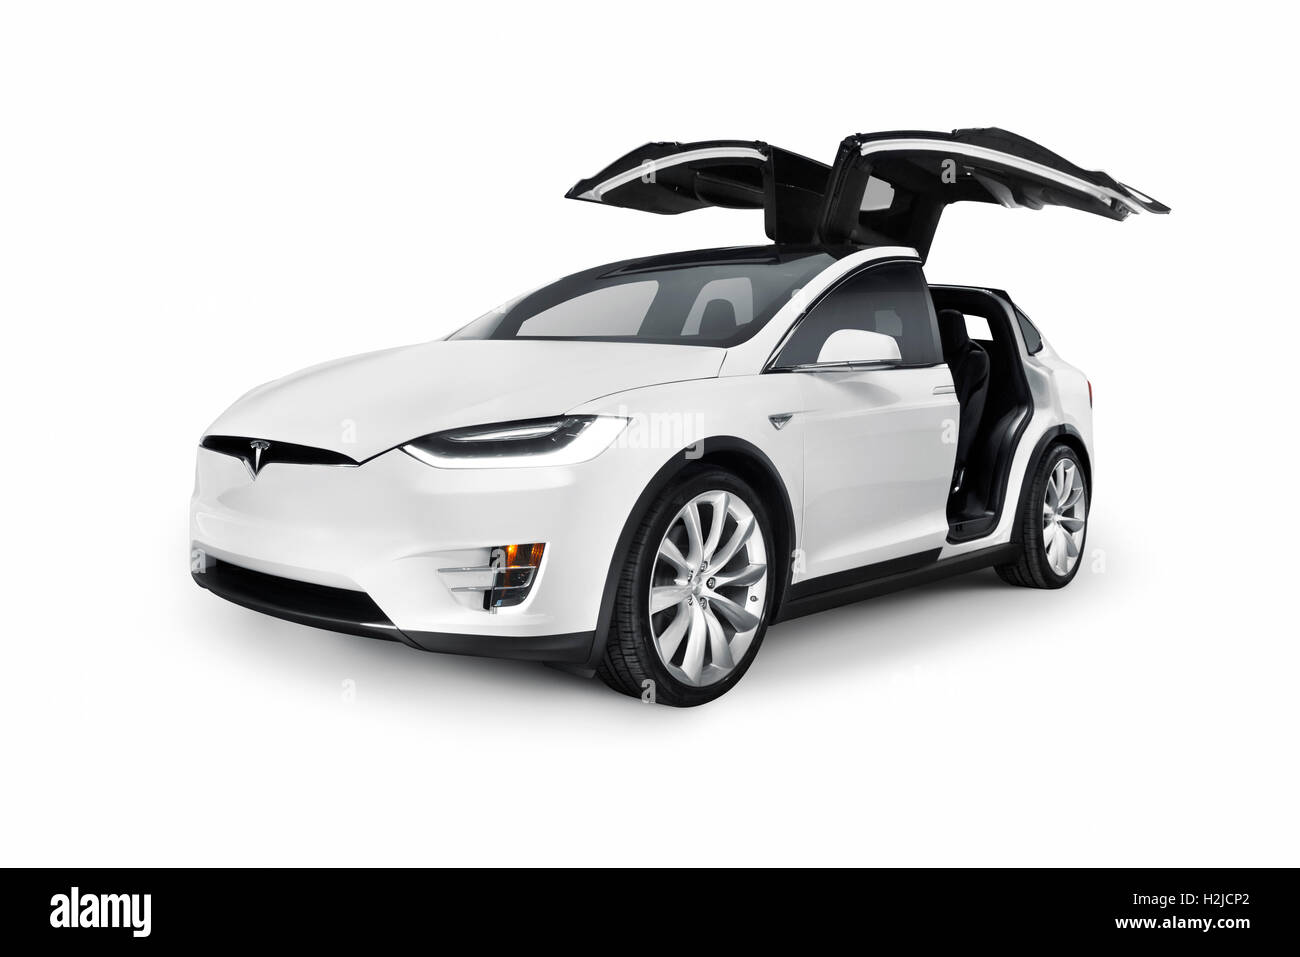 White Tesla Model X Luxury Suv Electric Car With Open Falcon